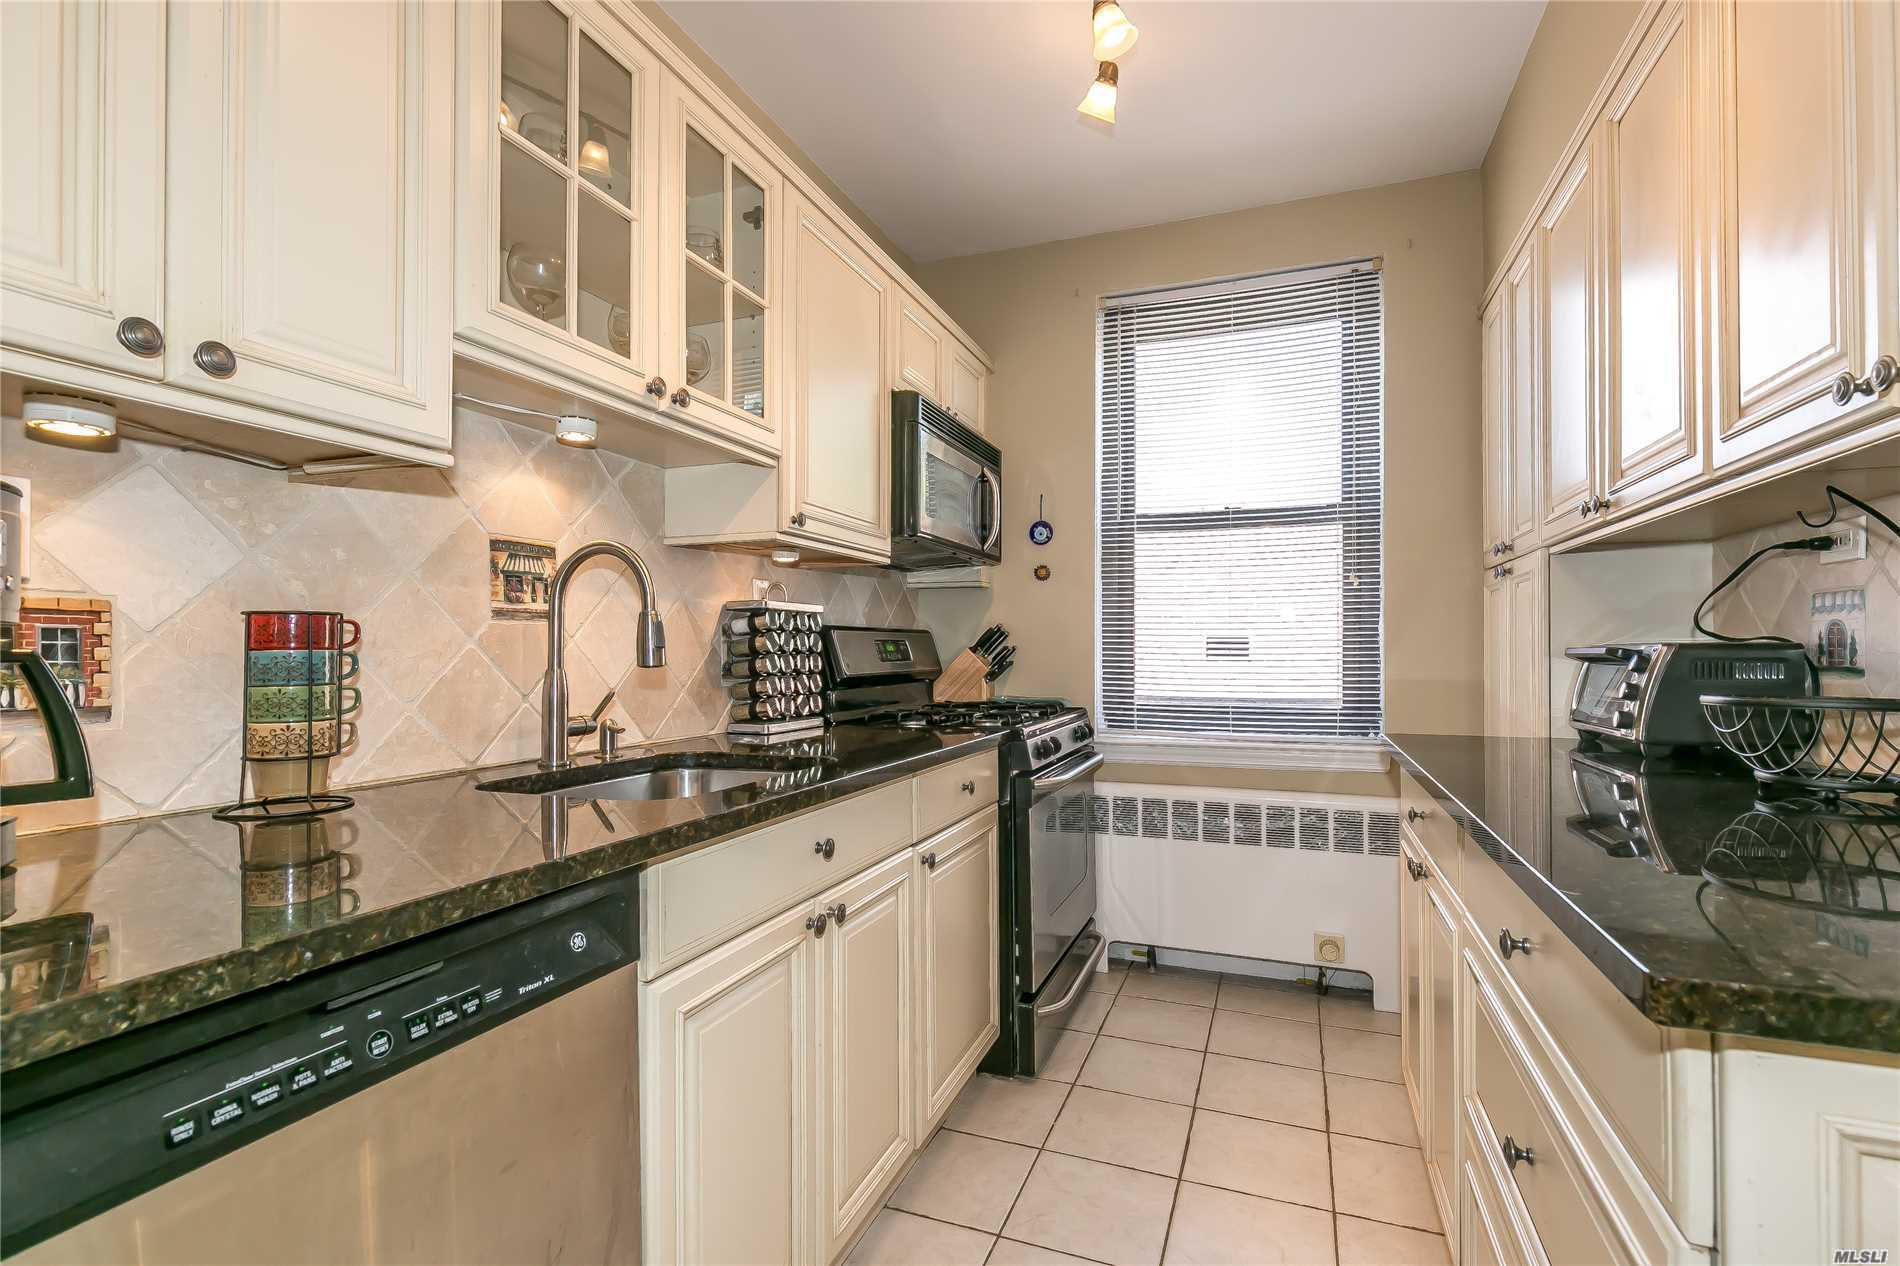 True Gem In The Heart Of Town! Quiet Top Floor Corner Spacious 2 Bedroom All Renovated. Huge Liv Rm W/9' Ceilings, Large Custom Eat-In-Kitch W/Wood Cabs, Granite Counters & Ss Appliances. Separate Dining Area. Sunny King Sized Master Br With 2 Lge Closets, Renov Full Bath, Sunny Spacious 2nd Br, 3 A/C's & Ceiling Fans , Wood Floors, Fitted Closets. Elev Bldg, Garage Pkg W/L. Free Storage Cage, Cats Ok. Only 2 Short Blks To Train & Shops, Great Neck S. Schools.